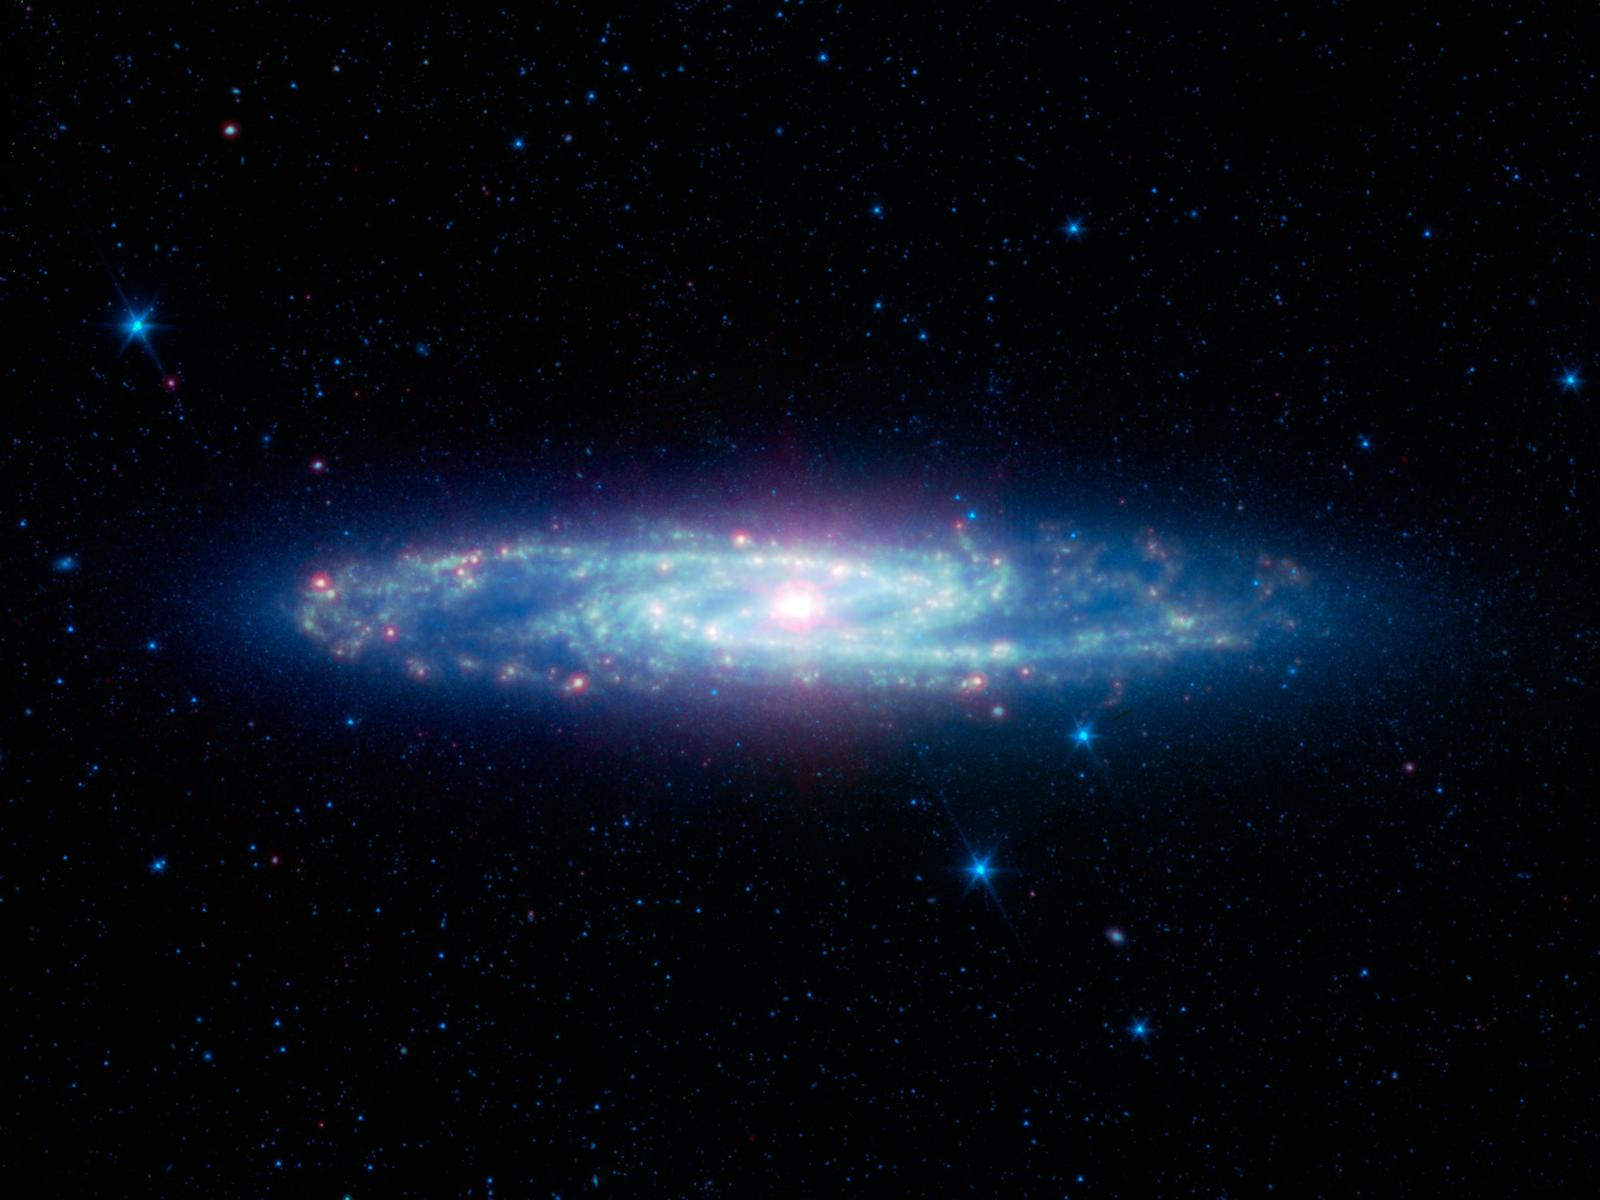 Sculptor Galaxy Spitzer Telescope space wallpaper